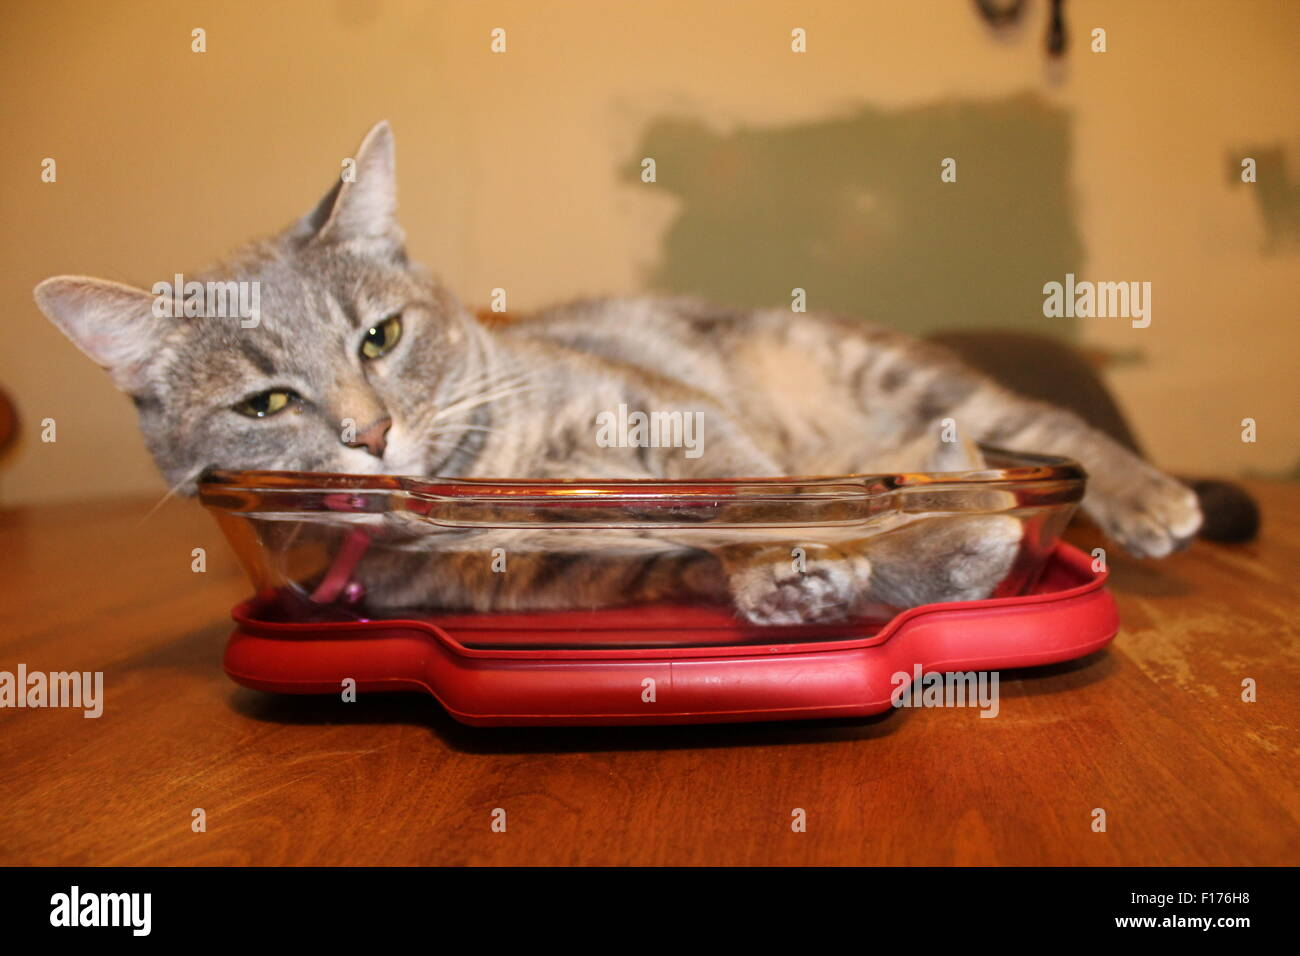 Charlie resting in a casserole dish on the kitchen table after a stressful day chasing spiders - Stock Image